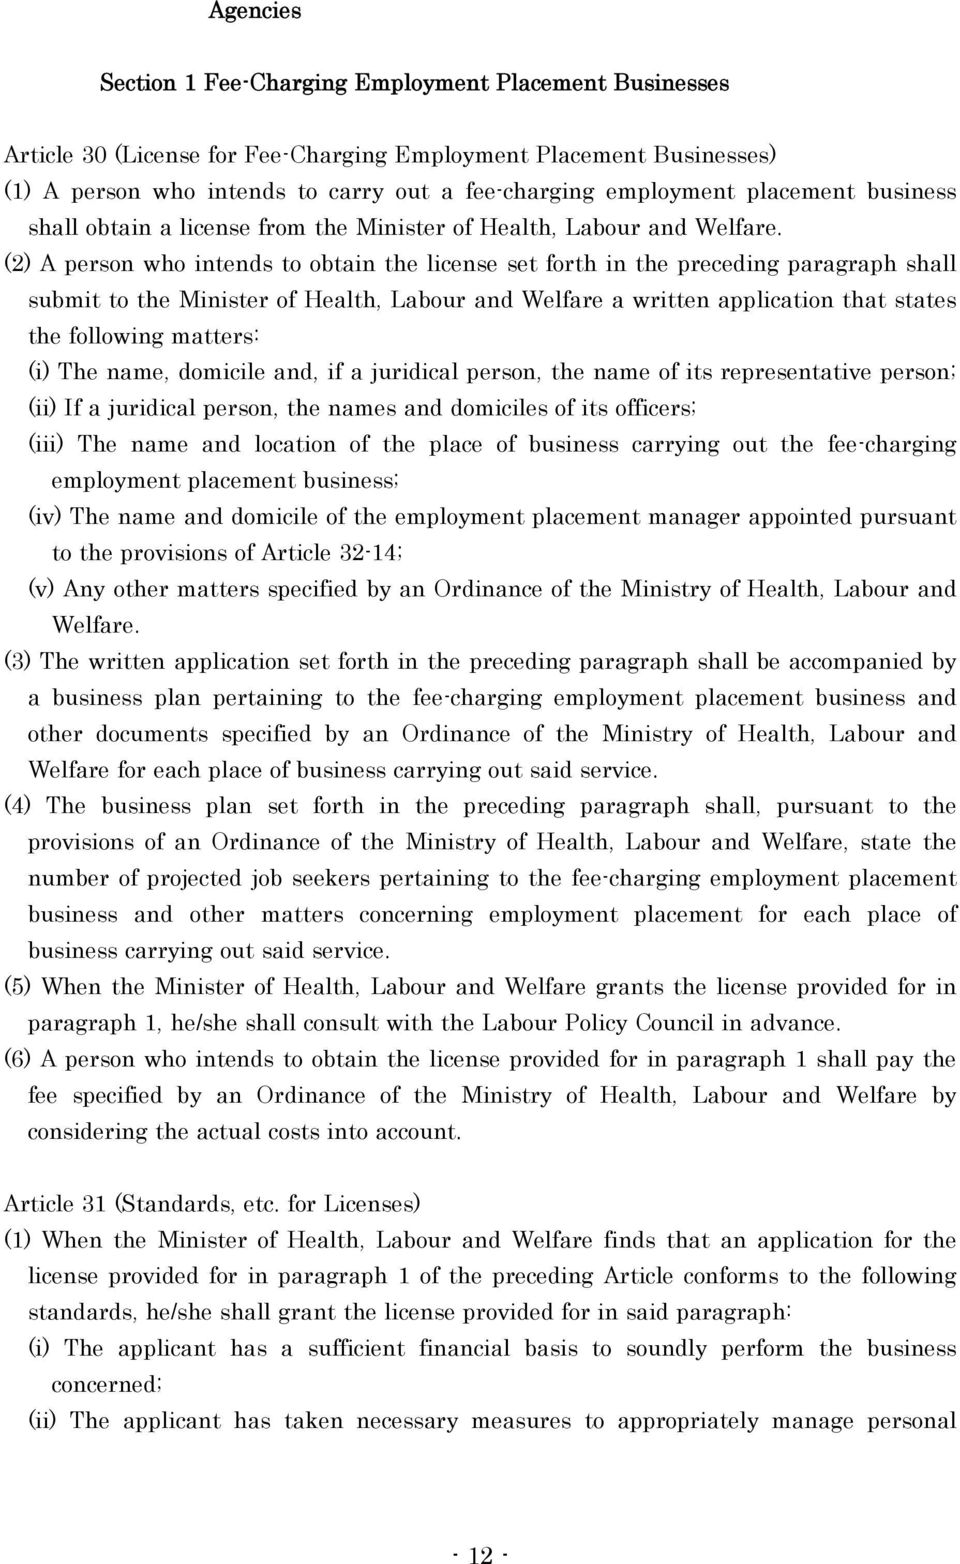 (2) A person who intends to obtain the license set forth in the preceding paragraph shall submit to the Minister of Health, Labour and Welfare a written application that states the following matters: